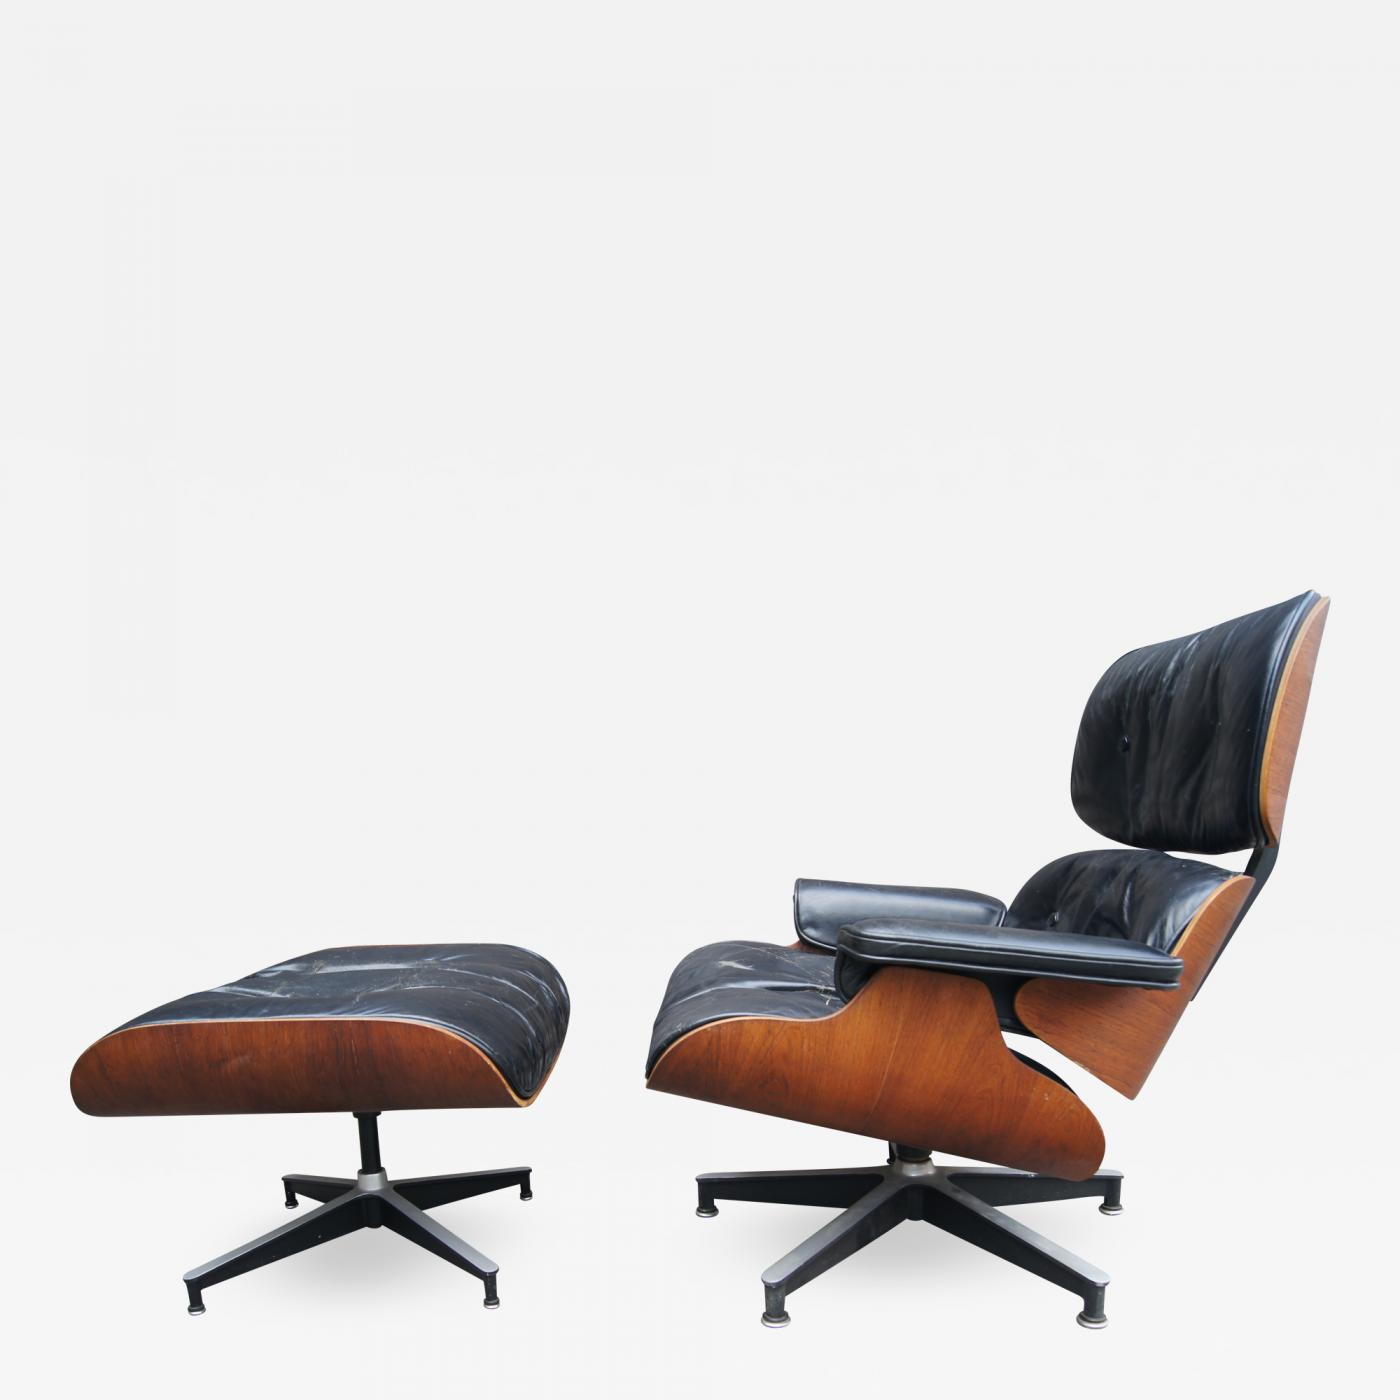 Eames Ottoman Charles And Ray Eames Lounge Chair Ottoman Model 670 671 By Charles Ray Eames For Herman Miller